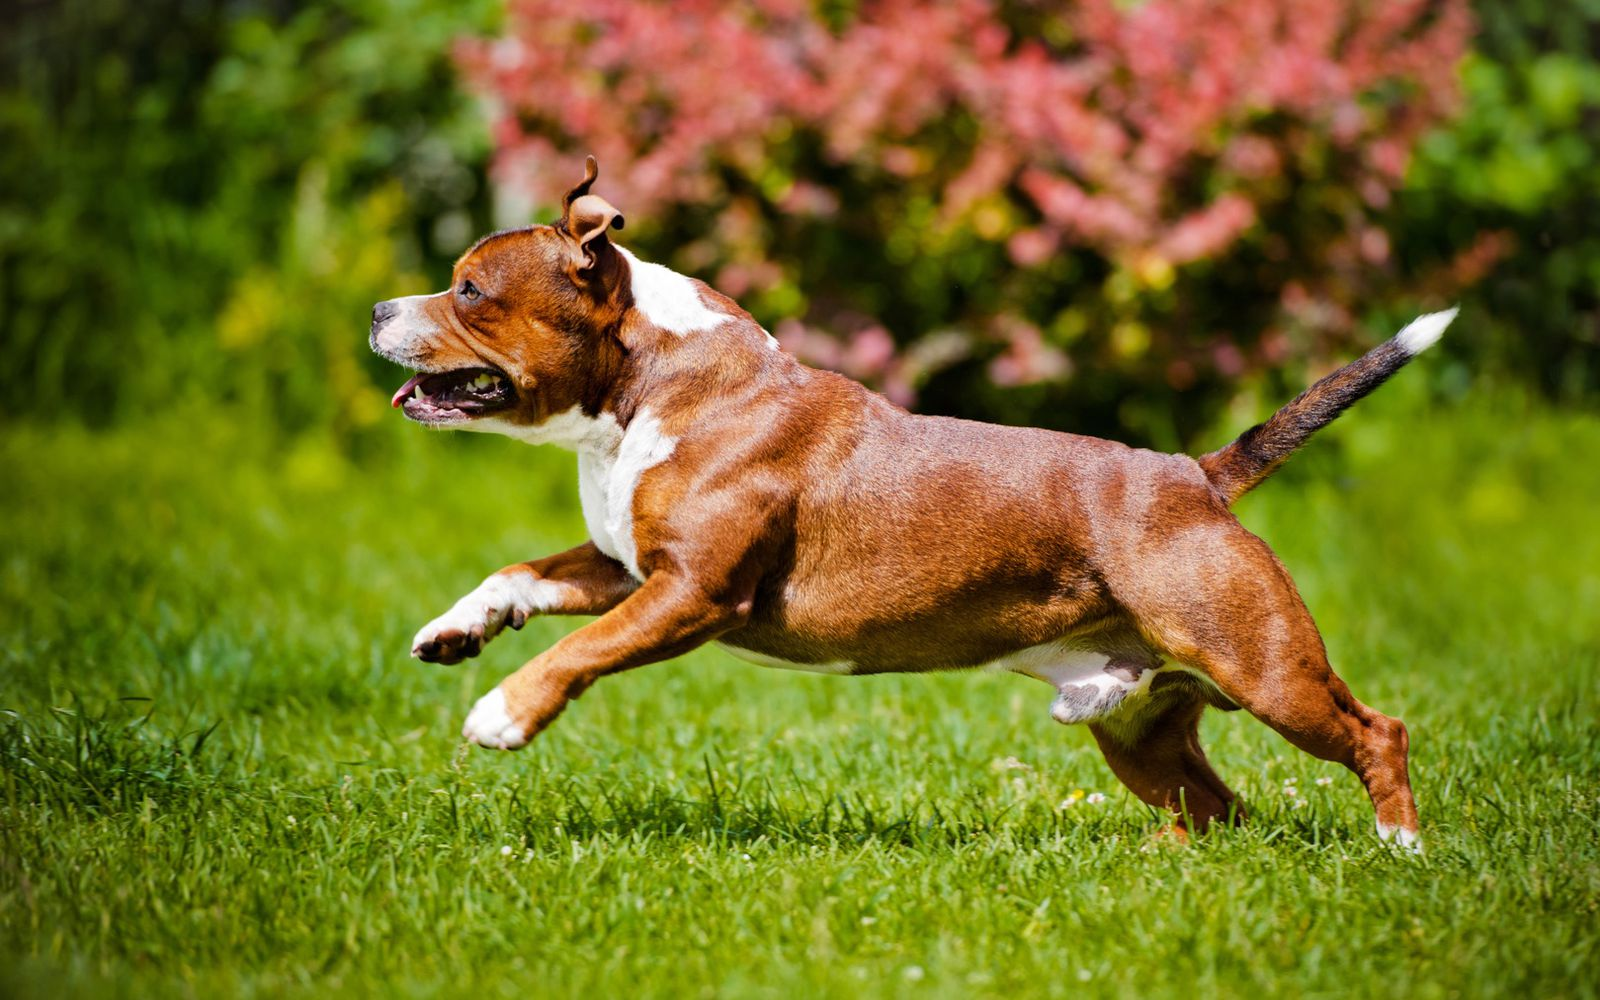 Staffordshire Bull Terrier - Lifestyle